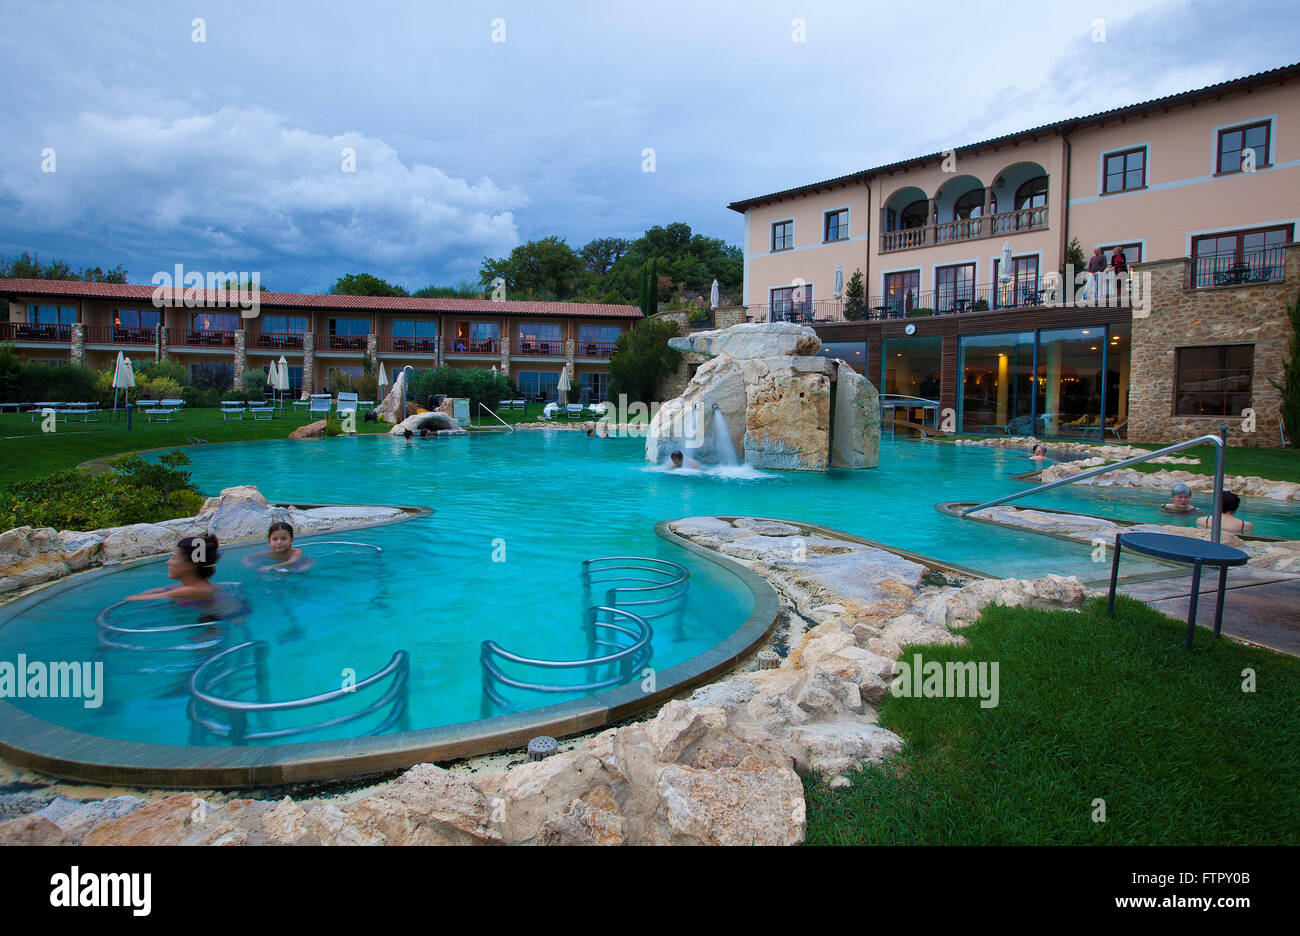 Hotel Adler Thermae Spa  Relax ResortBagno VignoniToscana Stock Photo 101307707  Alamy